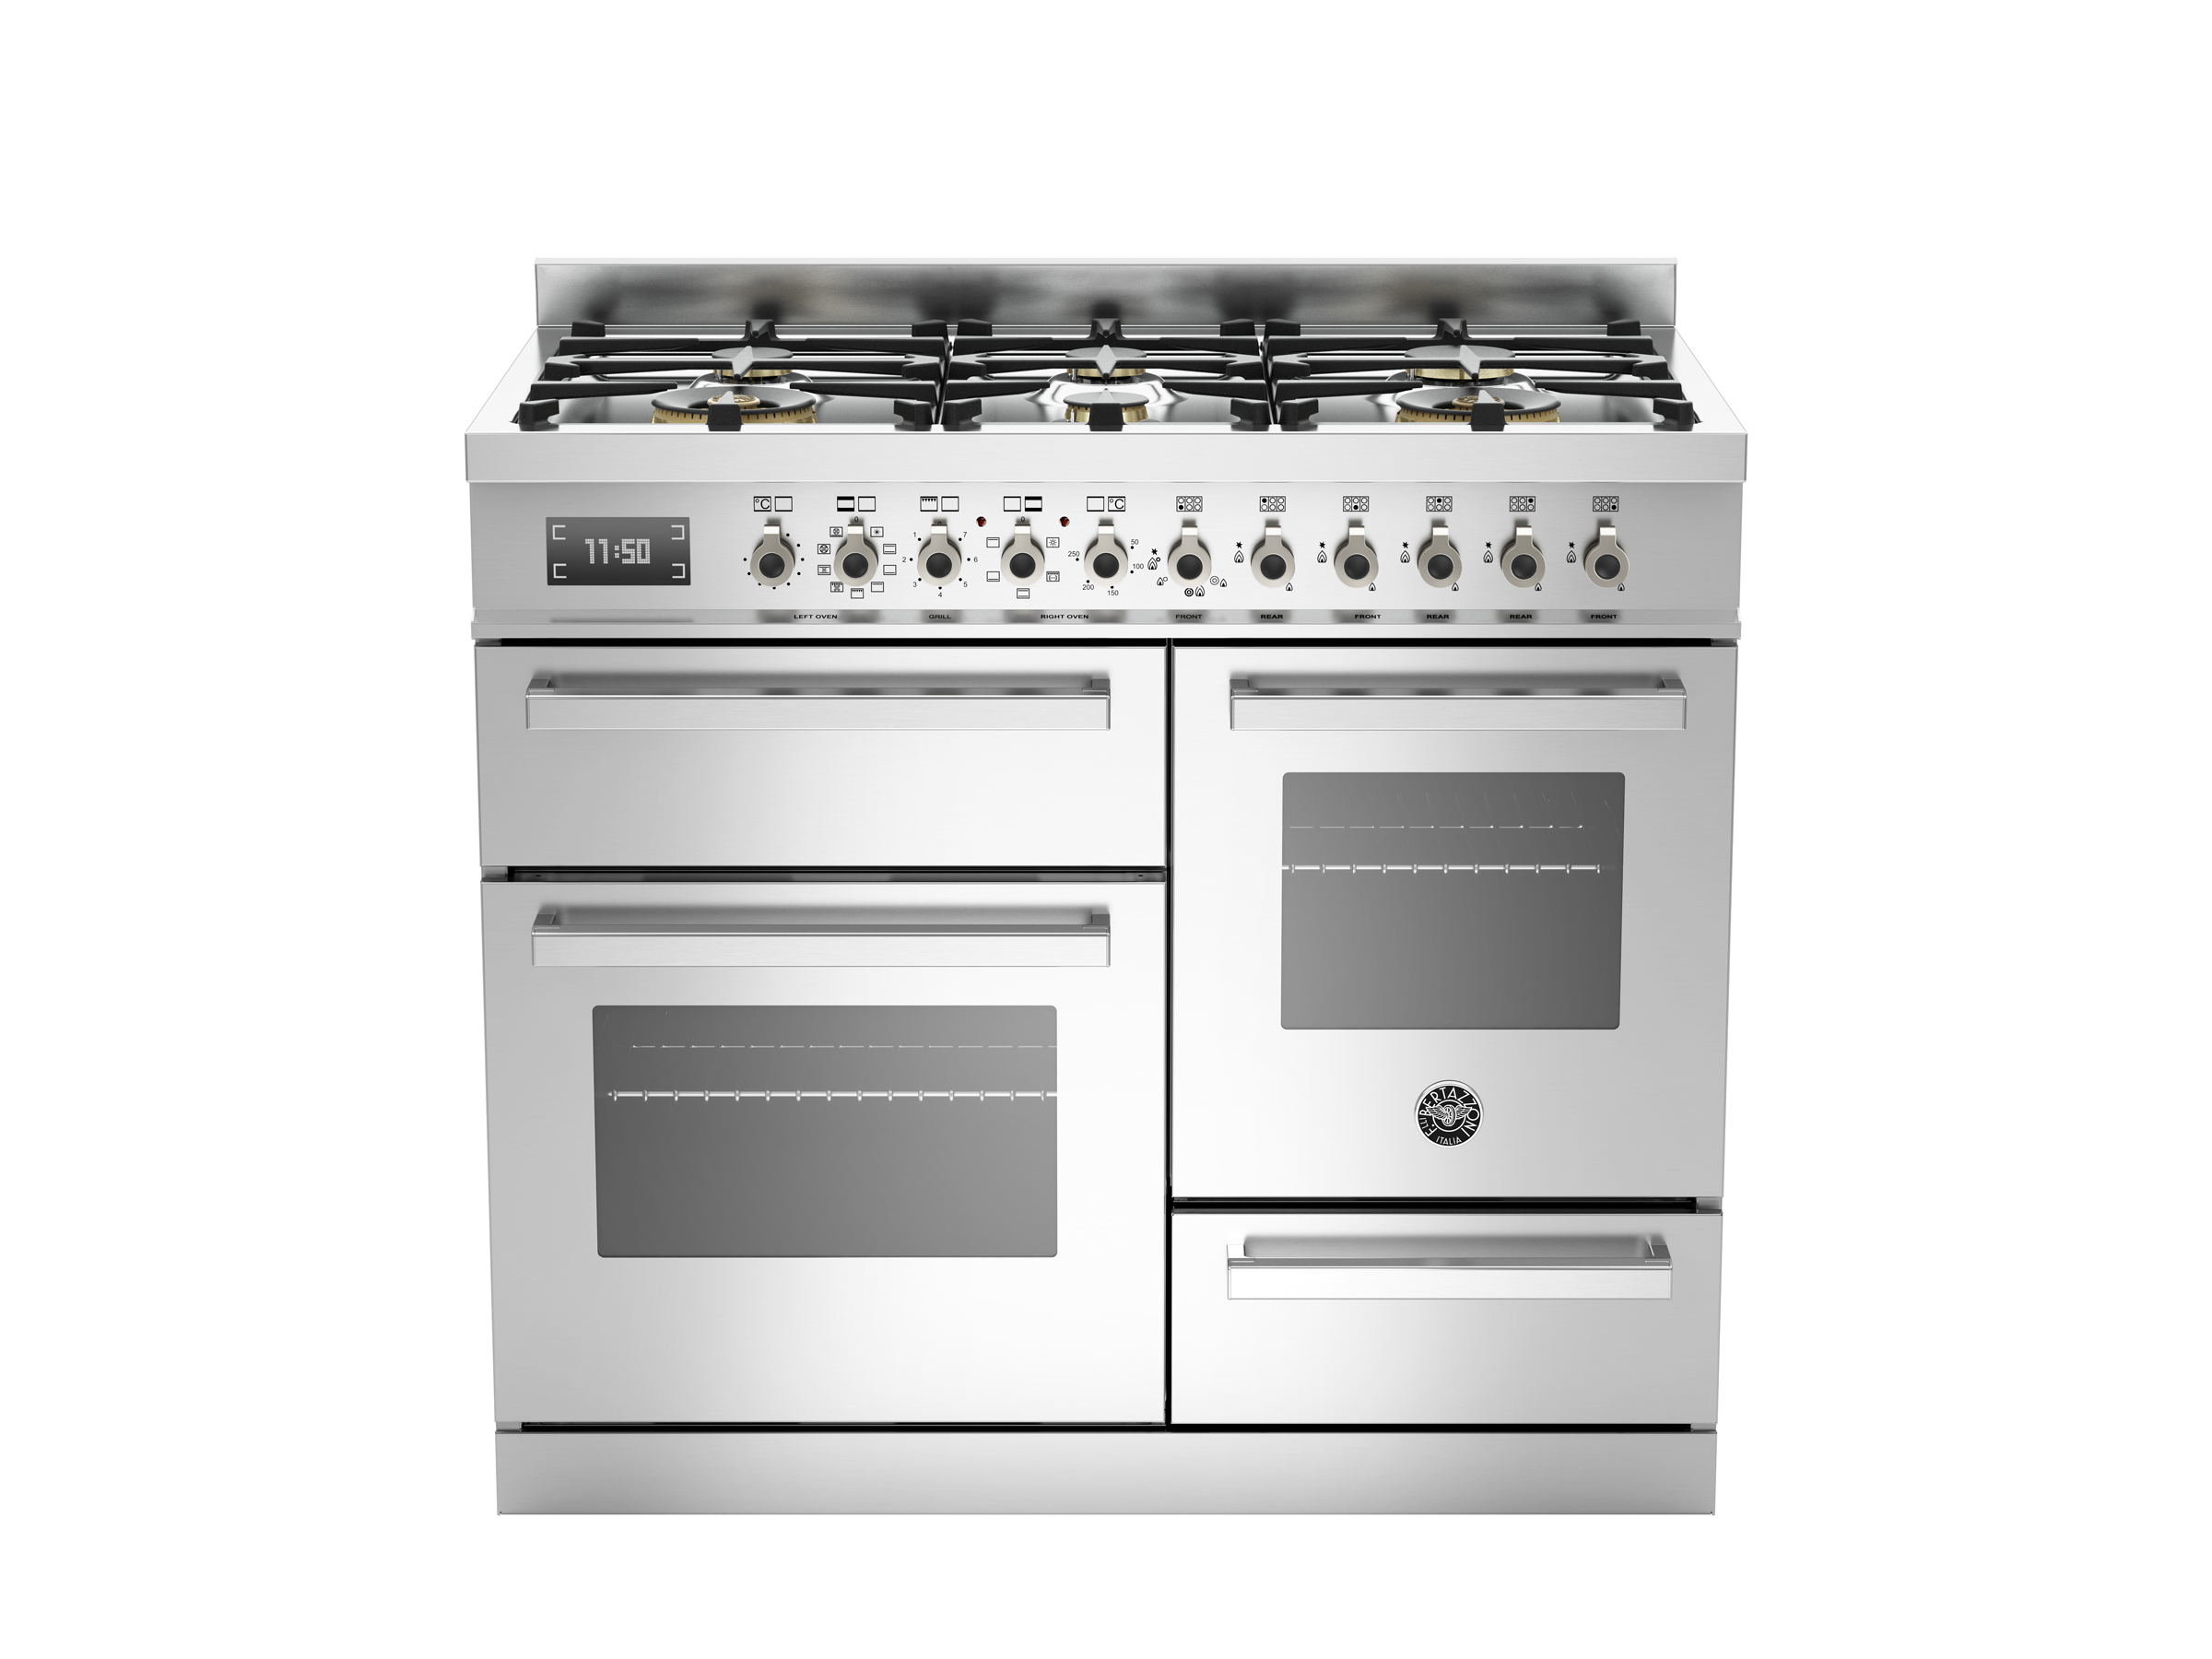 100 cm 6-burner electric triple oven | Bertazzoni - Stainless